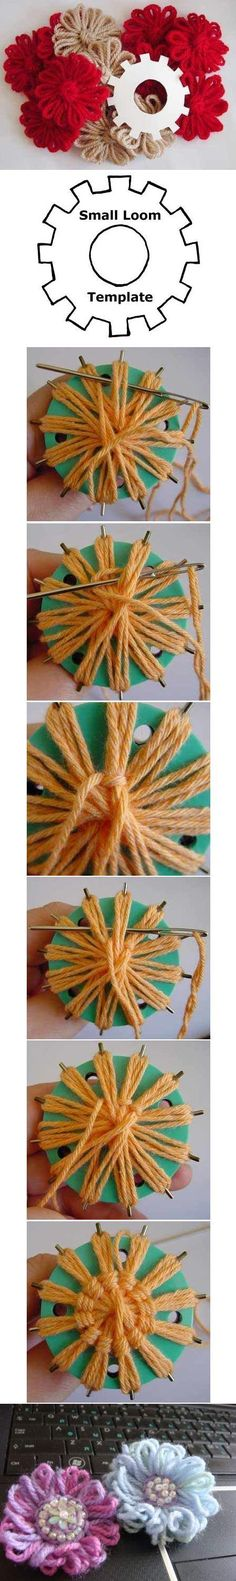 DIY Gear Flower DIY Gear Flower...nice to add onto crochet project or crochet around